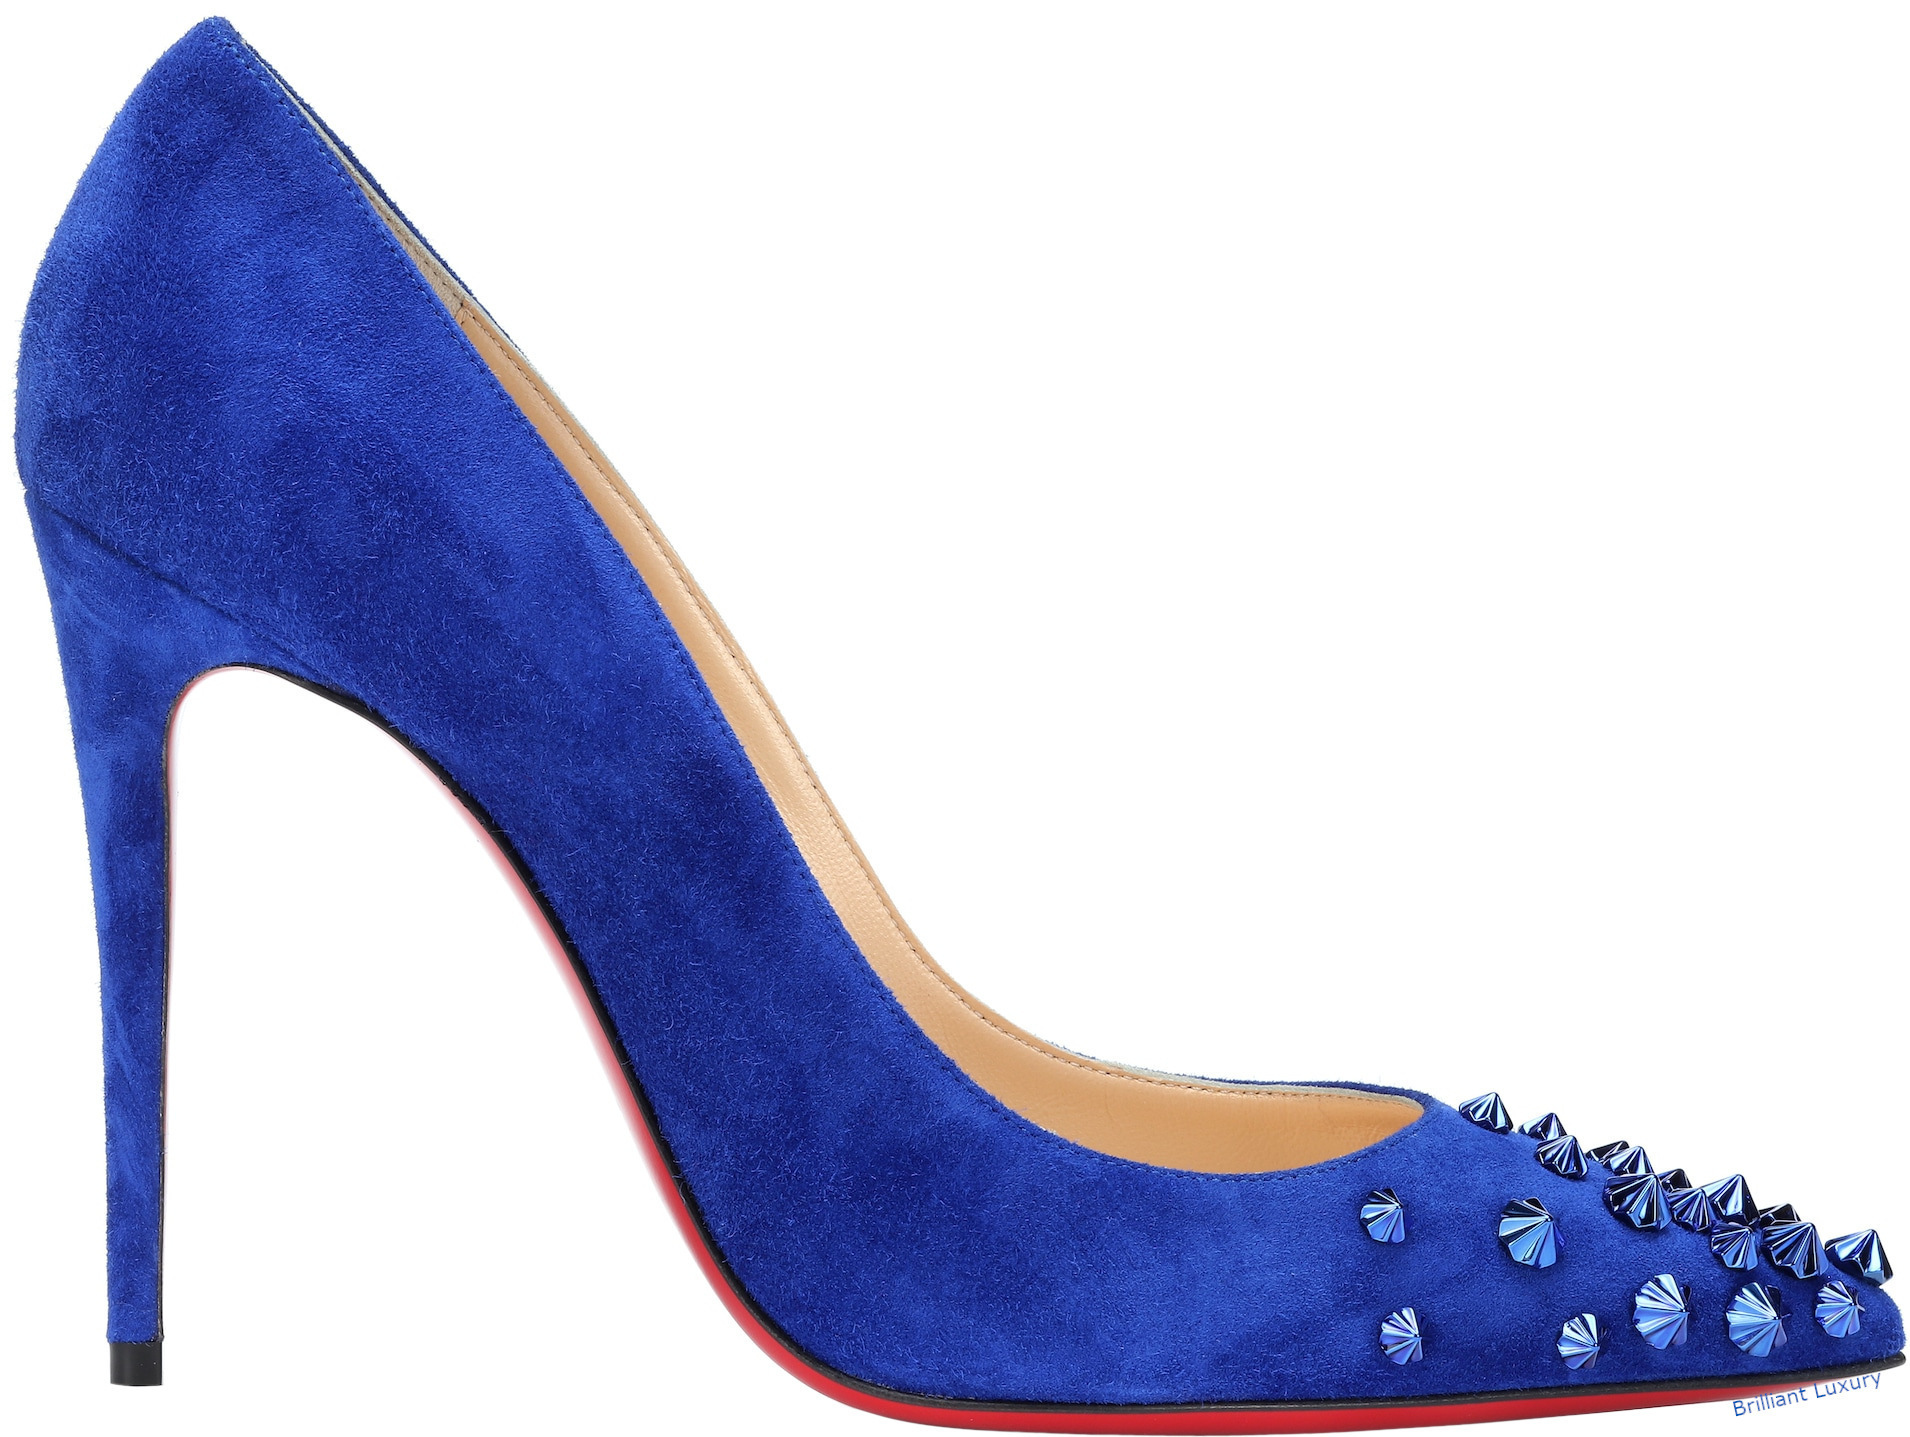 Christian Louboutin Drama suede pumps in Pantone Color Princess Blue